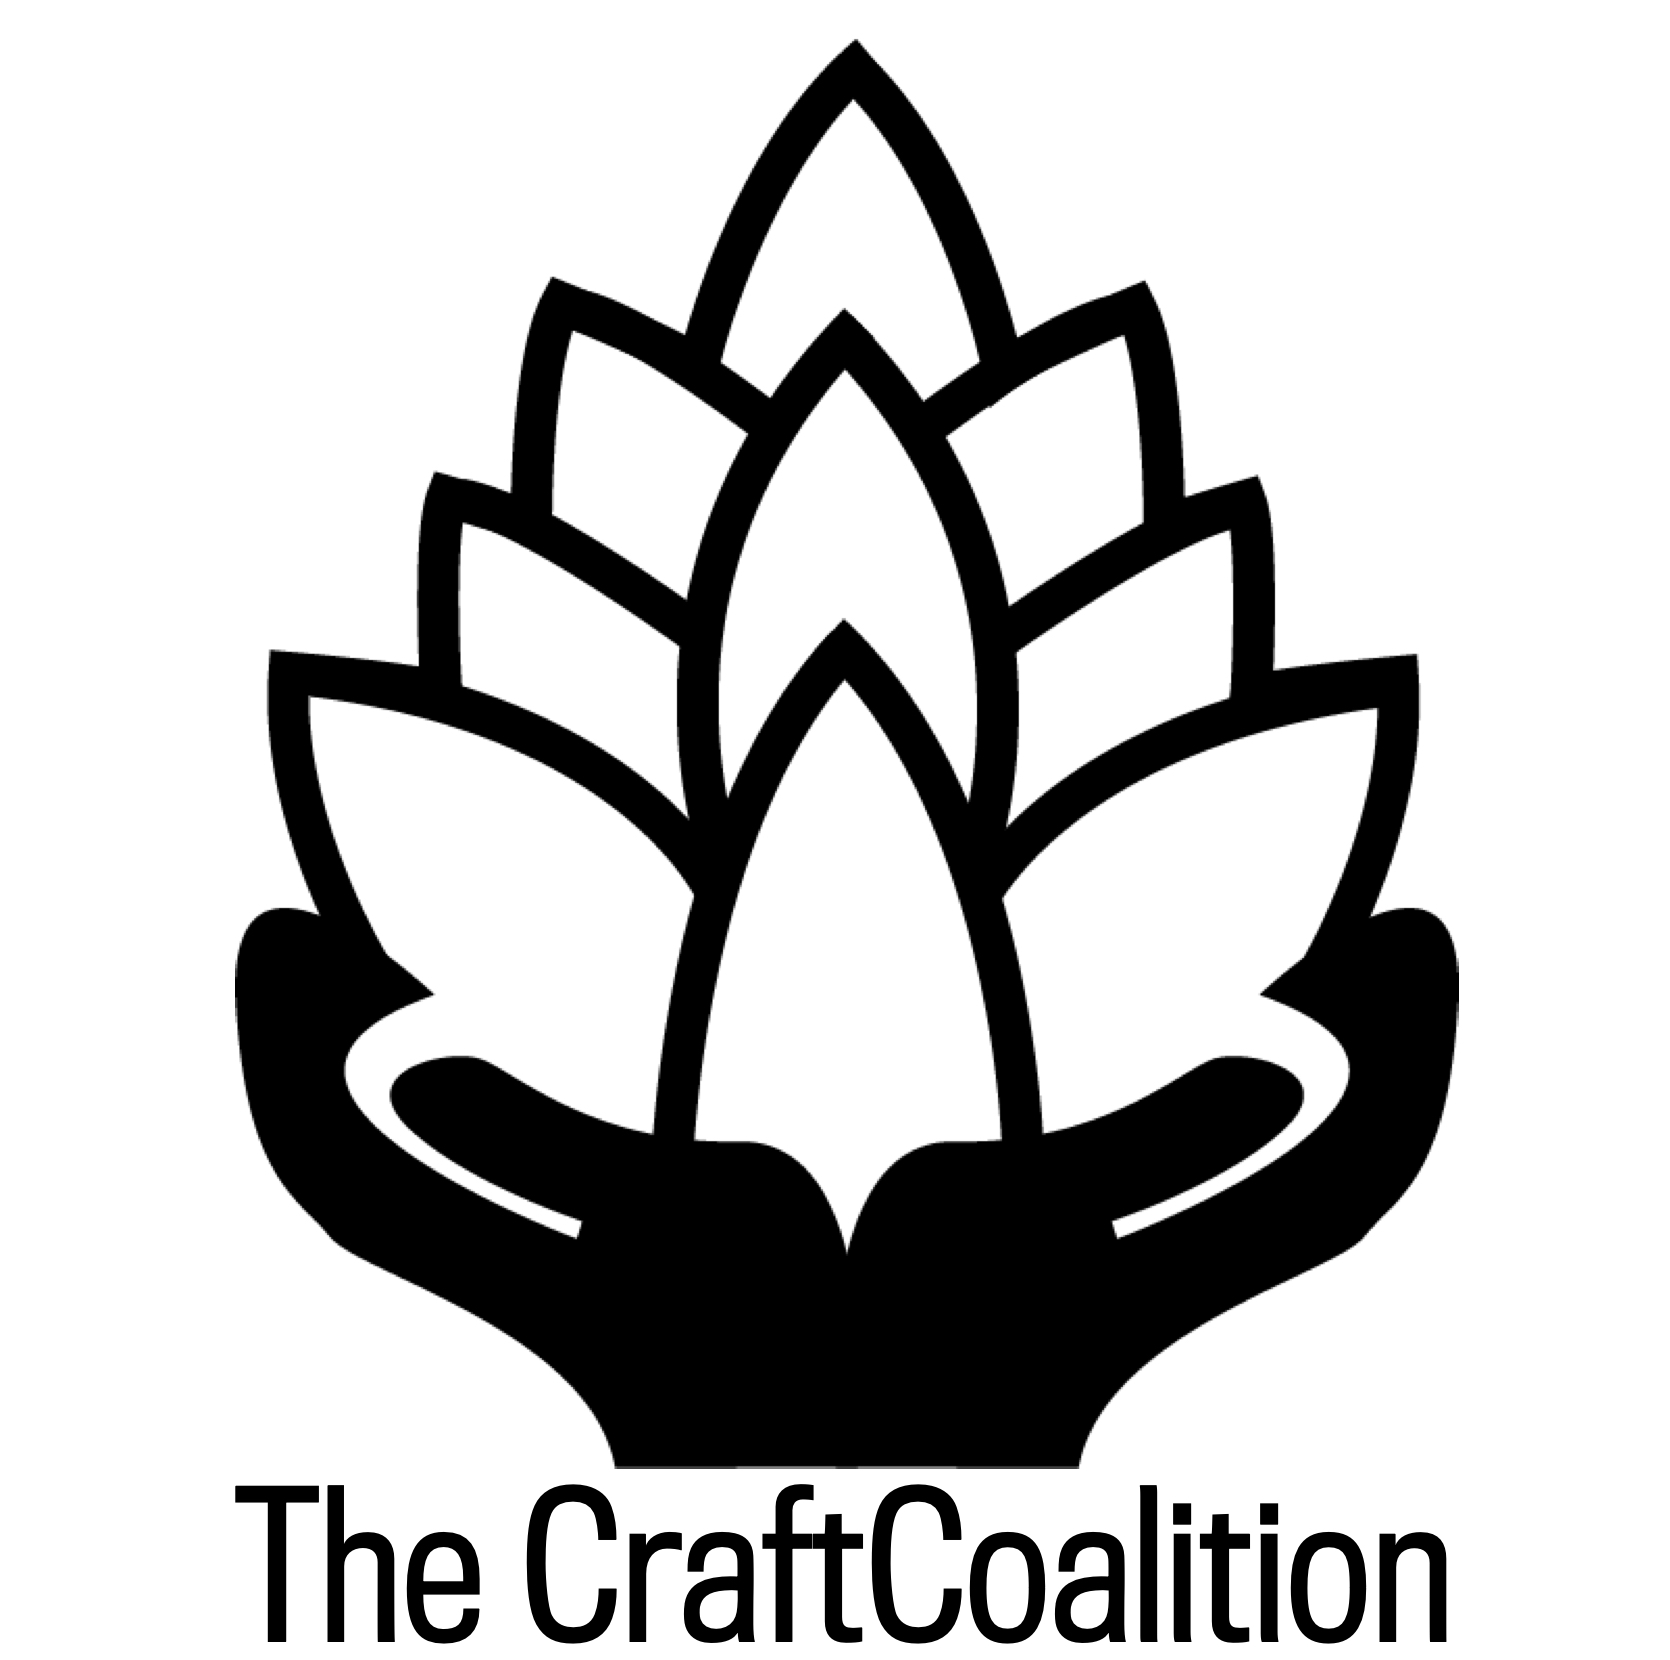 The CraftCoalition